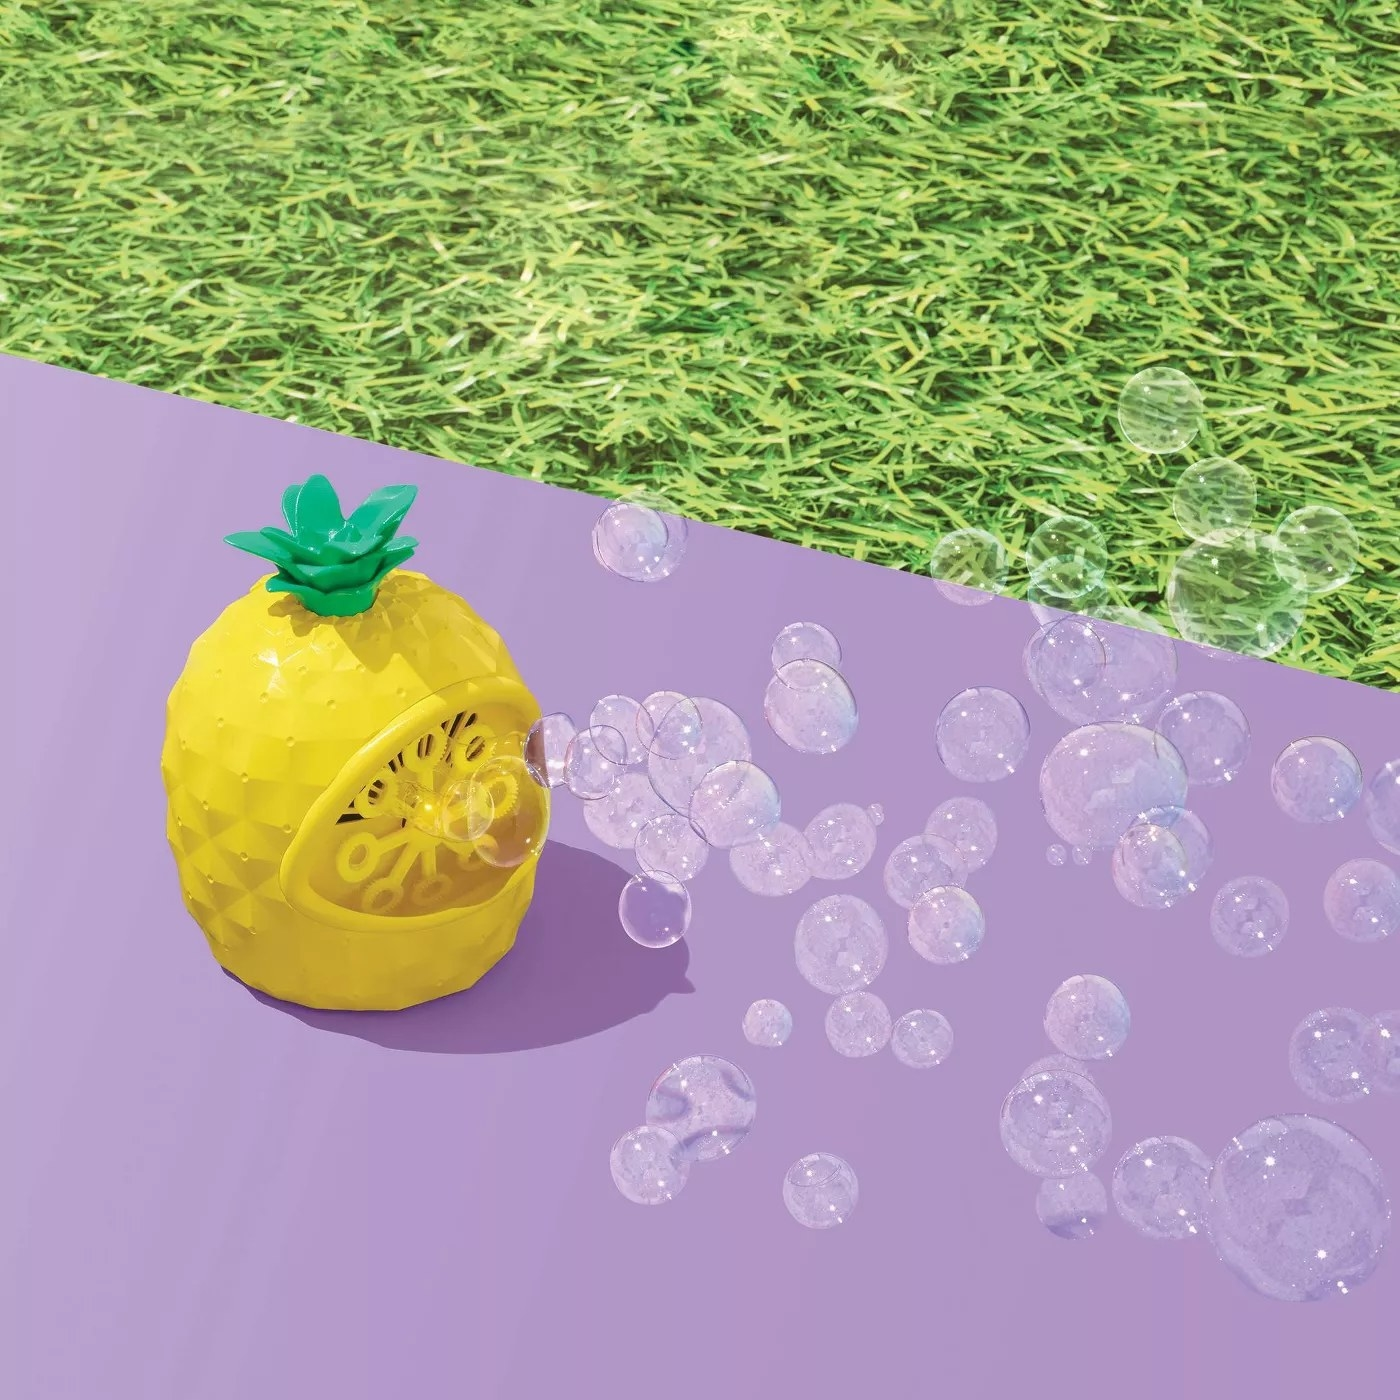 The pineapple bubble blower had a steady stream of bubbles coming out against a purple and grass background